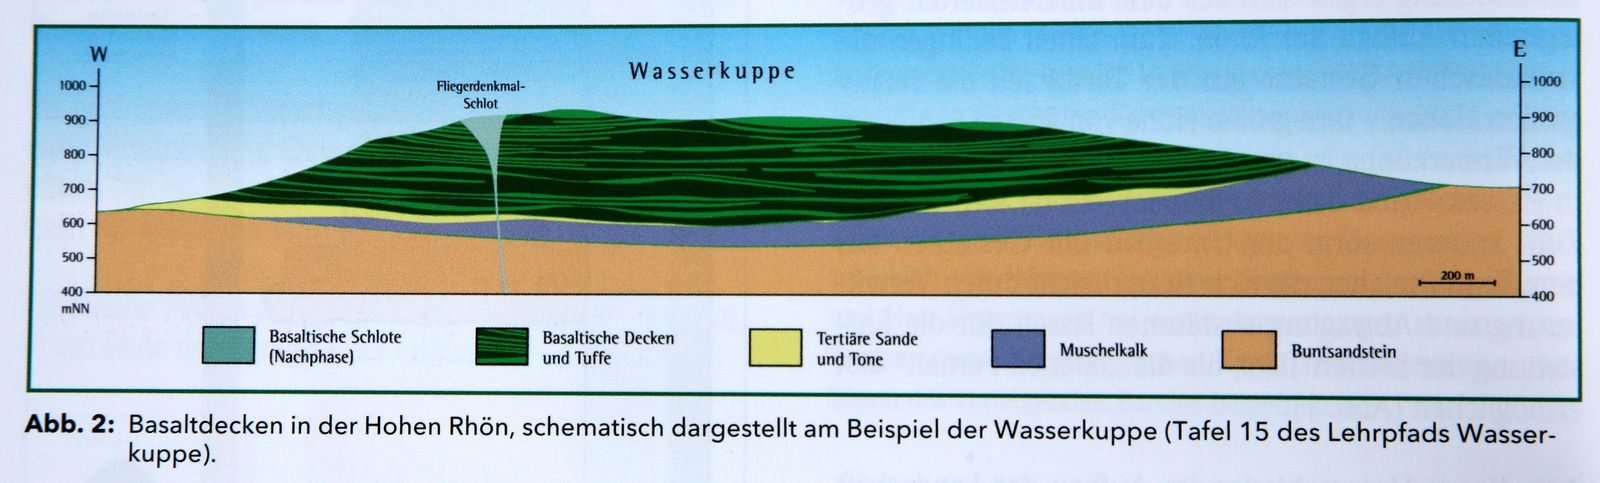 Schematic cross sectionof  Wasserkuppe - dark green : basalt and tuff - Light Green: vent at Fliegerdenkmal - Doc. Die in Hessische Rhön / Geotope im offenen land of fermentation / Hlug.de